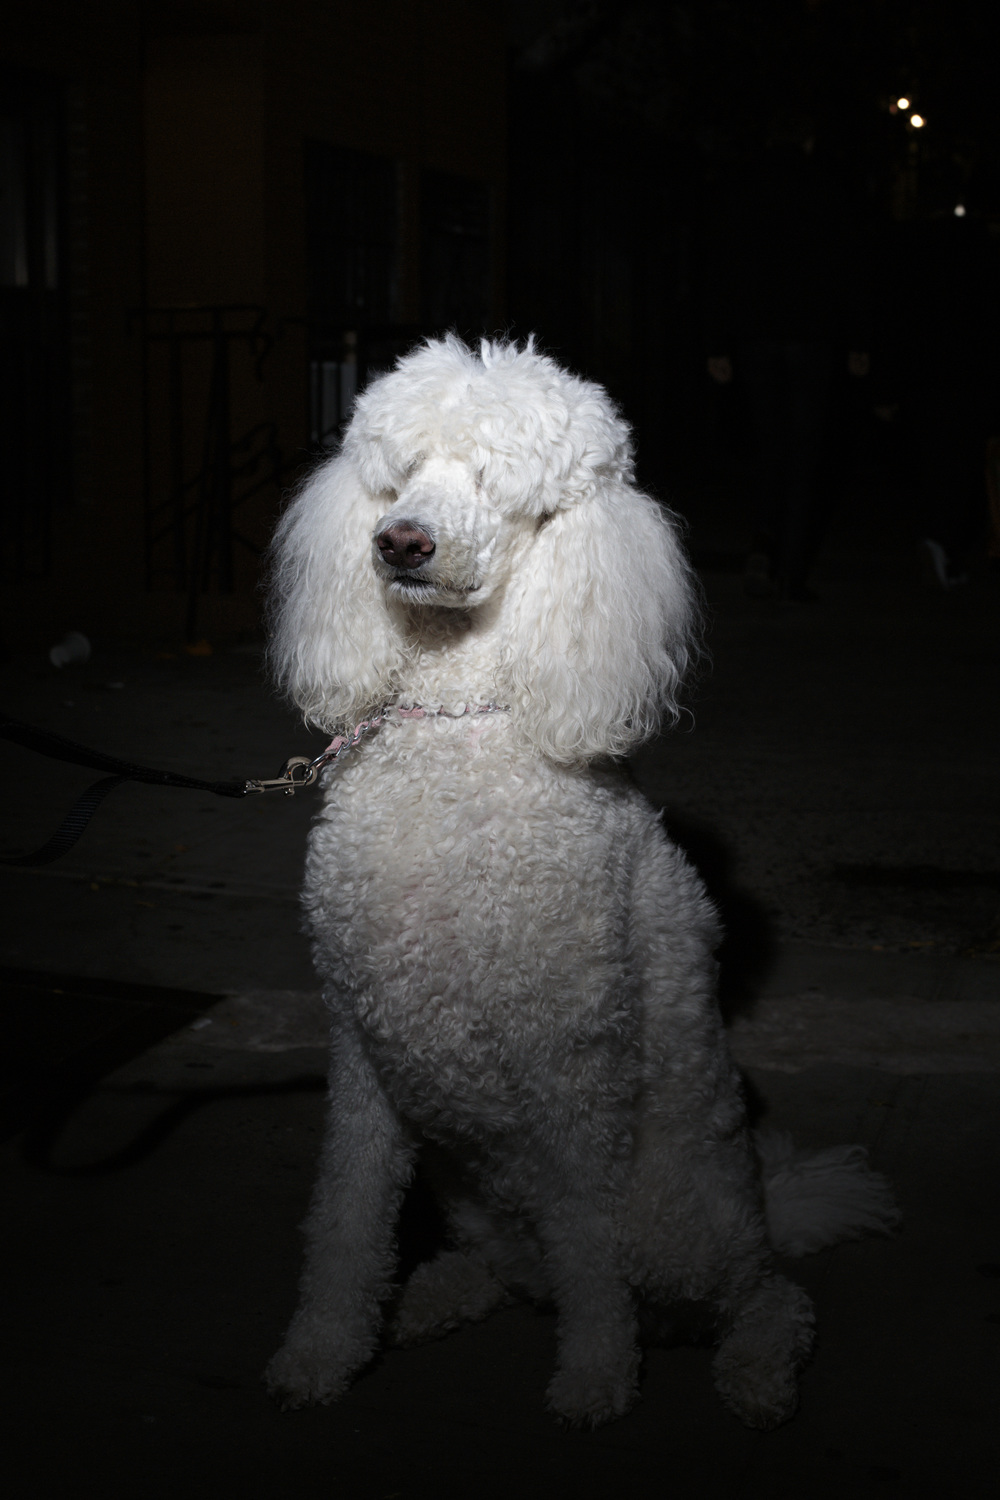 New York, USA - October 31, 2015: A clean dog with an absolutely perfect white fur reflects the change of inhabitants in the Bowery. Wealthier residents go out for a walk with their aristocratic pets.  The Bowery, a street and neighborhood in Manhattan, once home for vagrants and a diversity of subcultures became the playground of artists, fancy bars and real-estate tycoons.